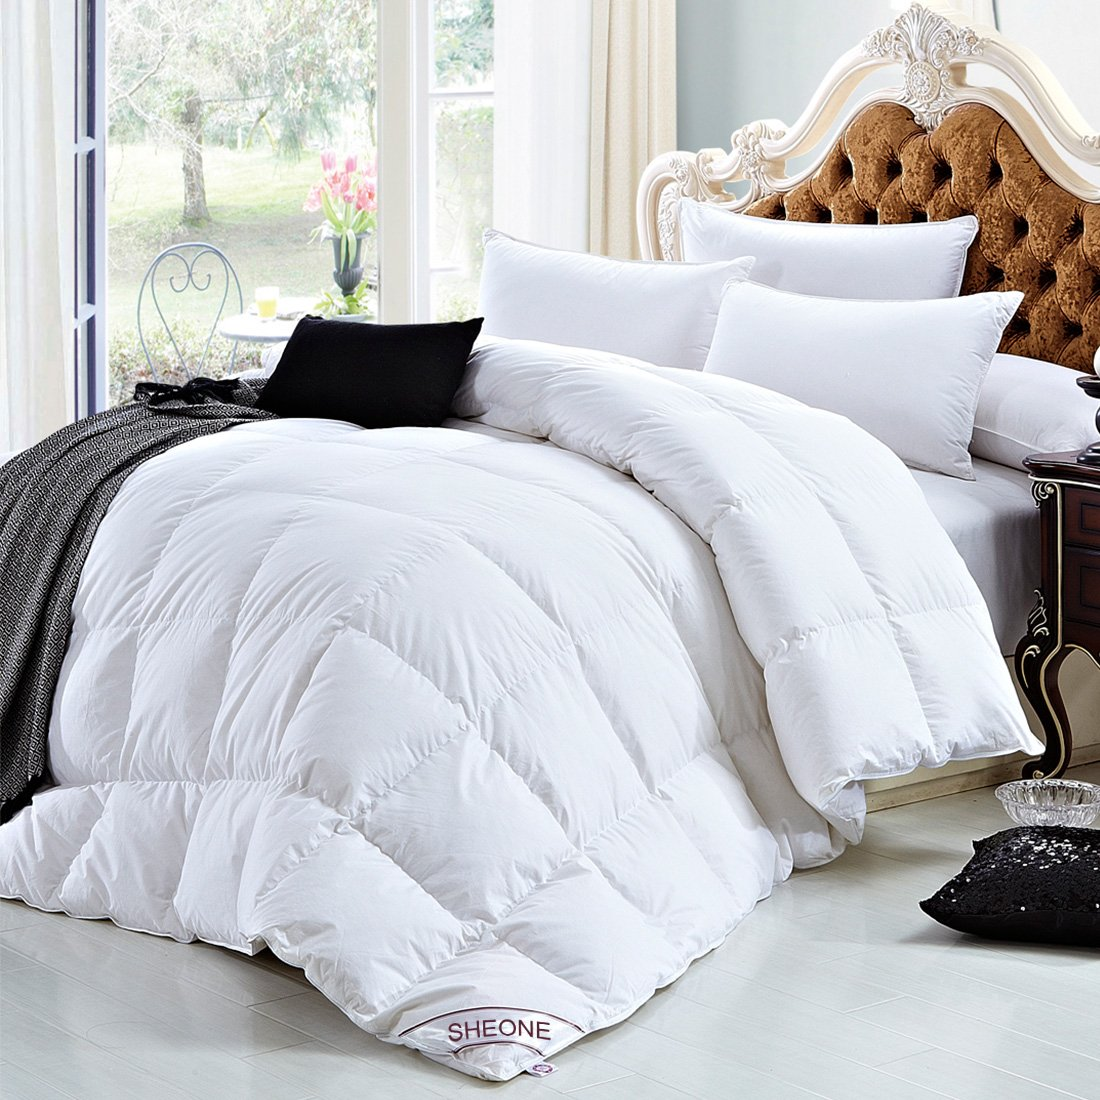 White Goose Down Comforters Queen/Full Size 600 Thread Count 100% Cotton 750 + Fill Power Shell Down Proof-Solid White Hypo-allergenic with Corner Tab